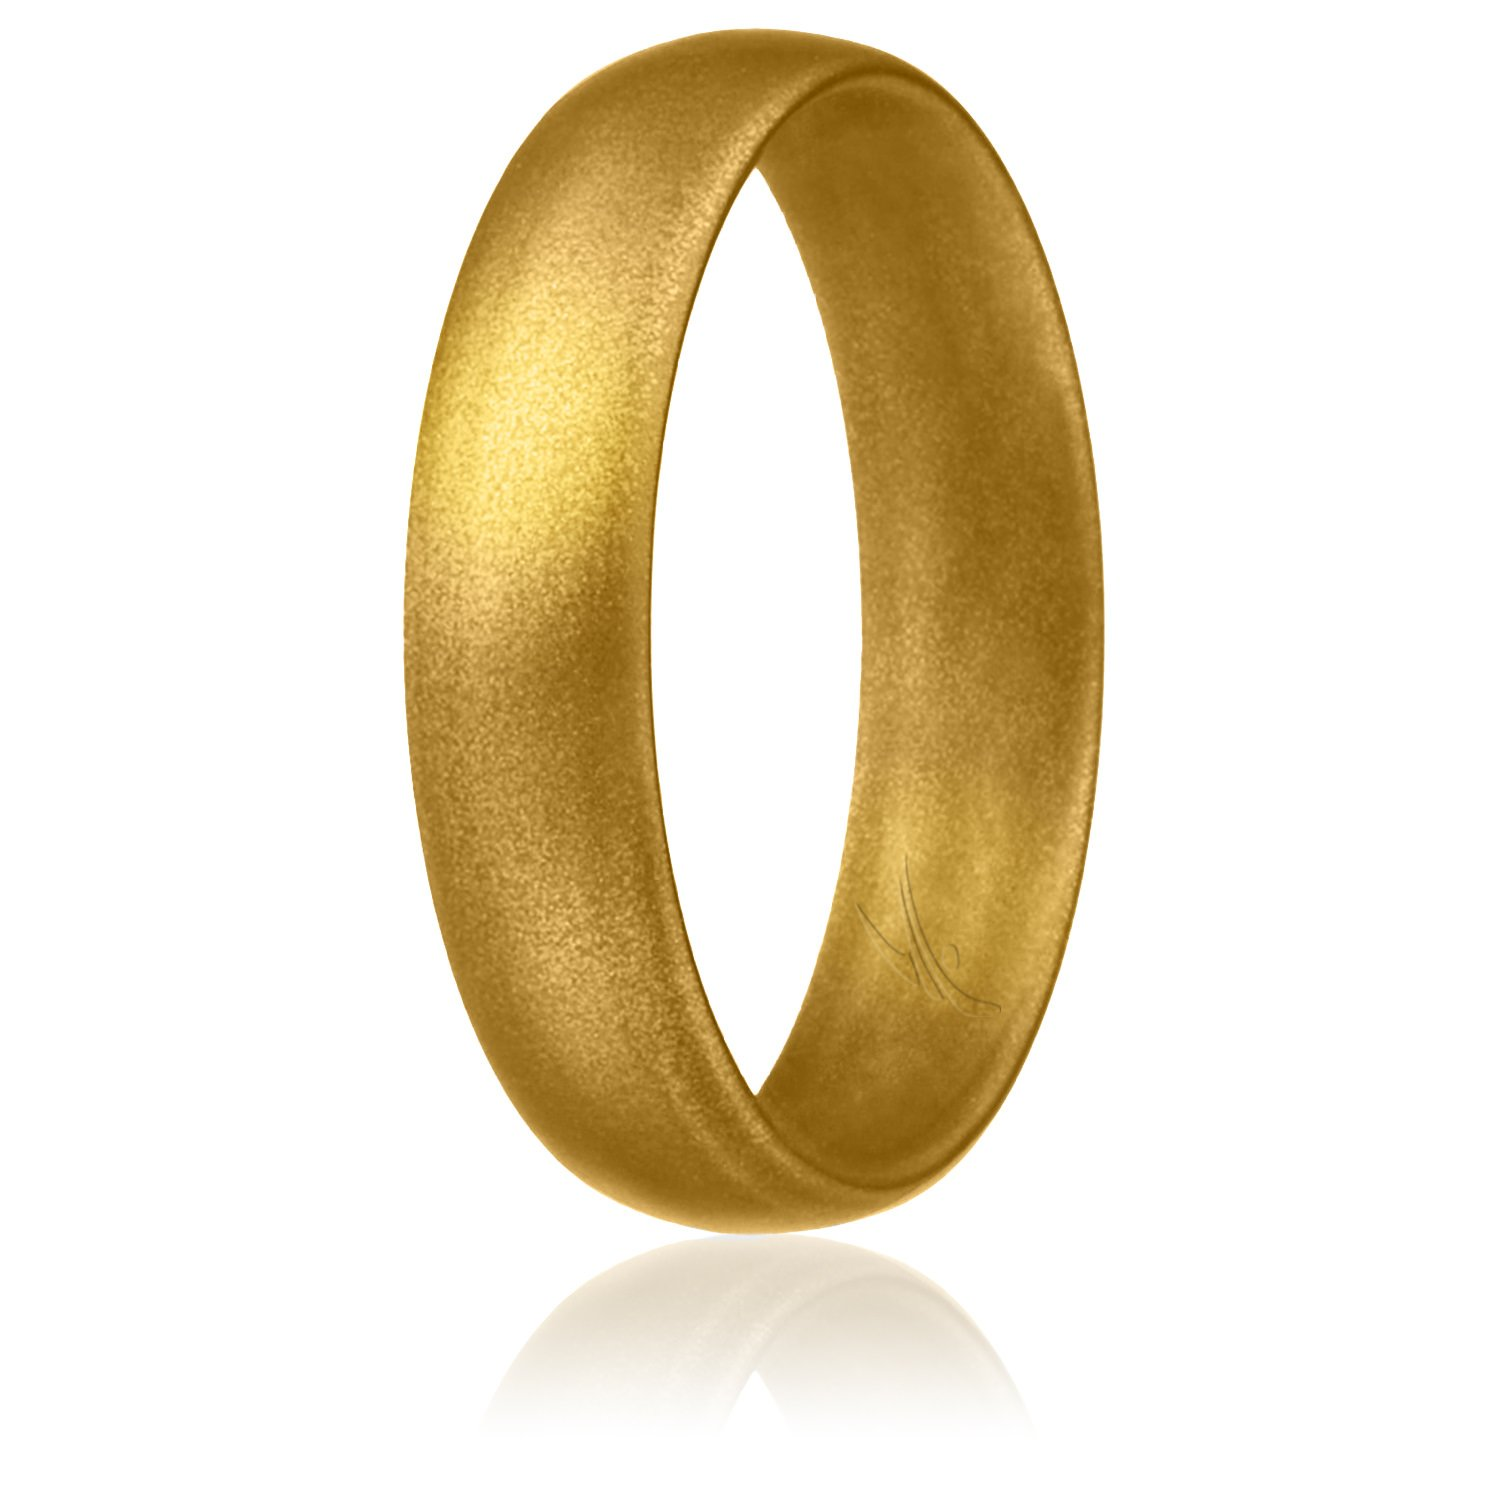 Roq Silicone Wedding Ring For Women Thin Affordable 6mm Metallic Rubber Bands Fort Fit Singles 4 Packs Rose Gold Silver: Gunmetal Thin Wedding Band At Reisefeber.org